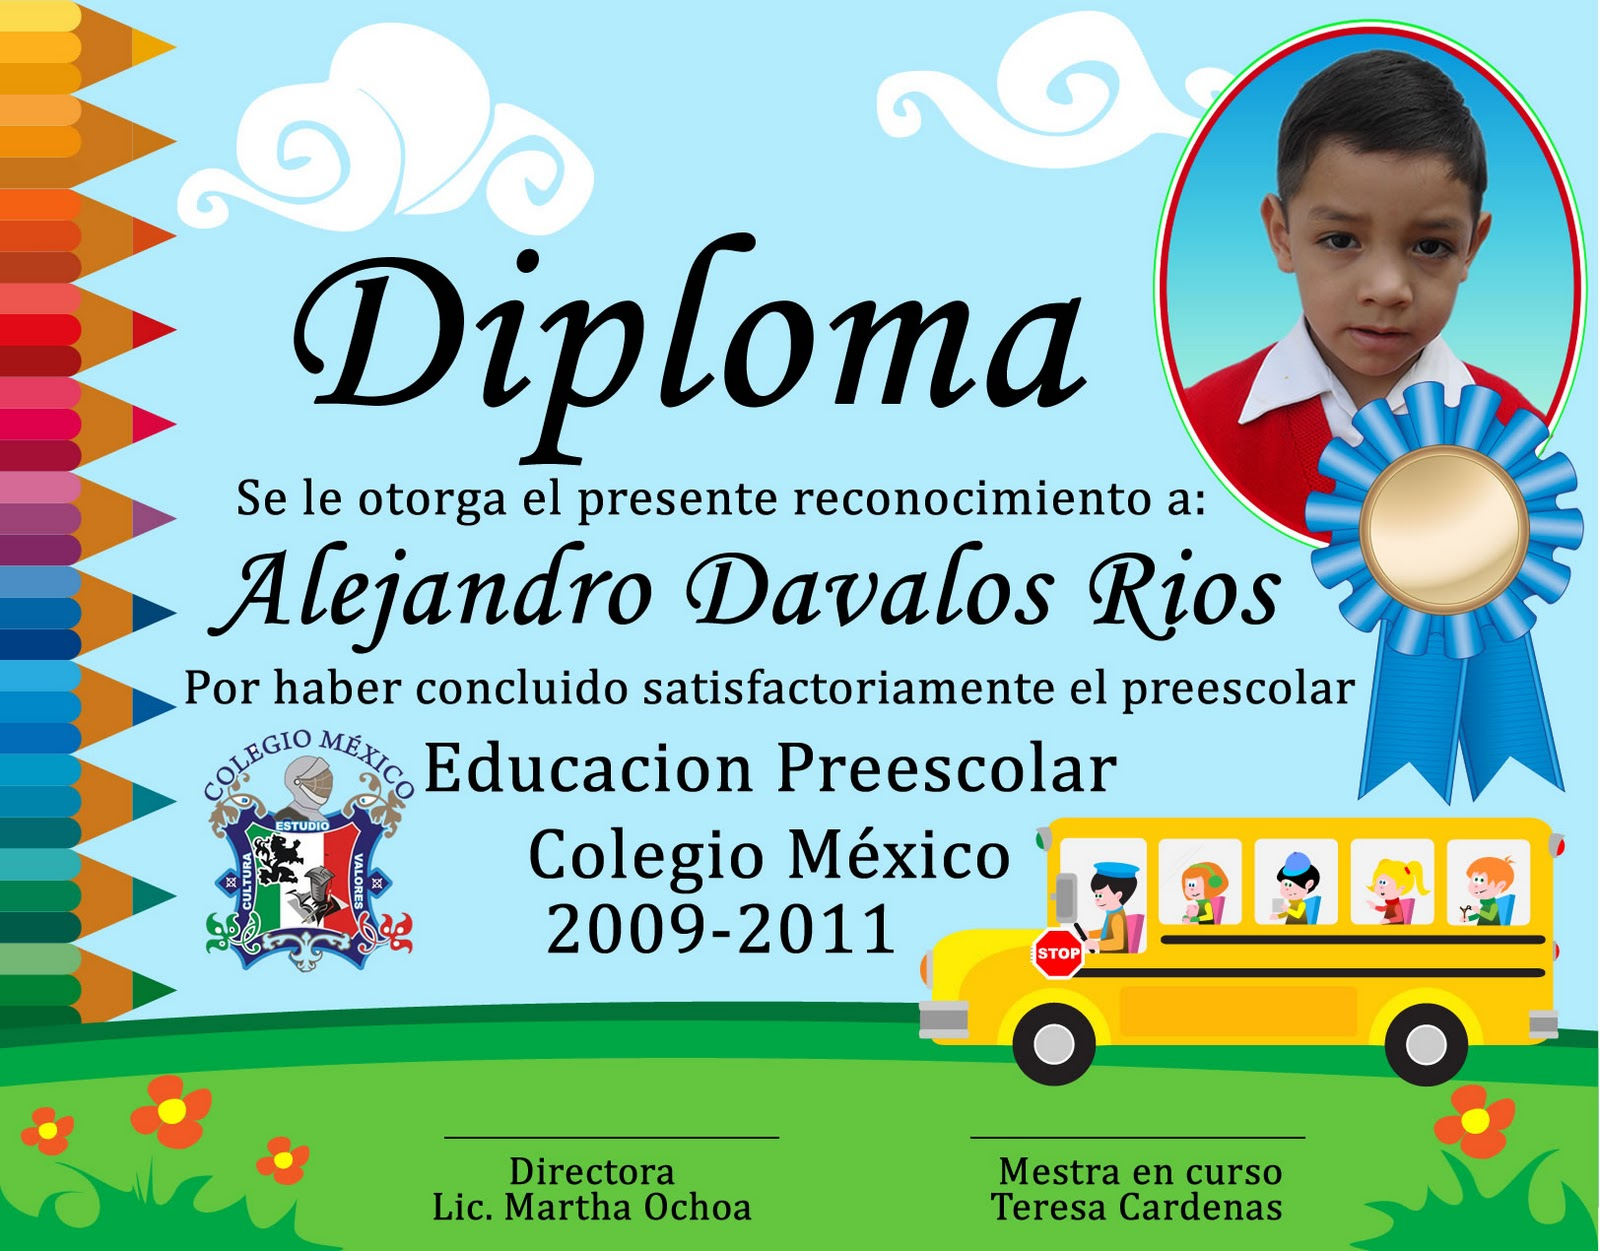 Diploma Para De Preescolar Wallpapers | Real Madrid Wallpapers